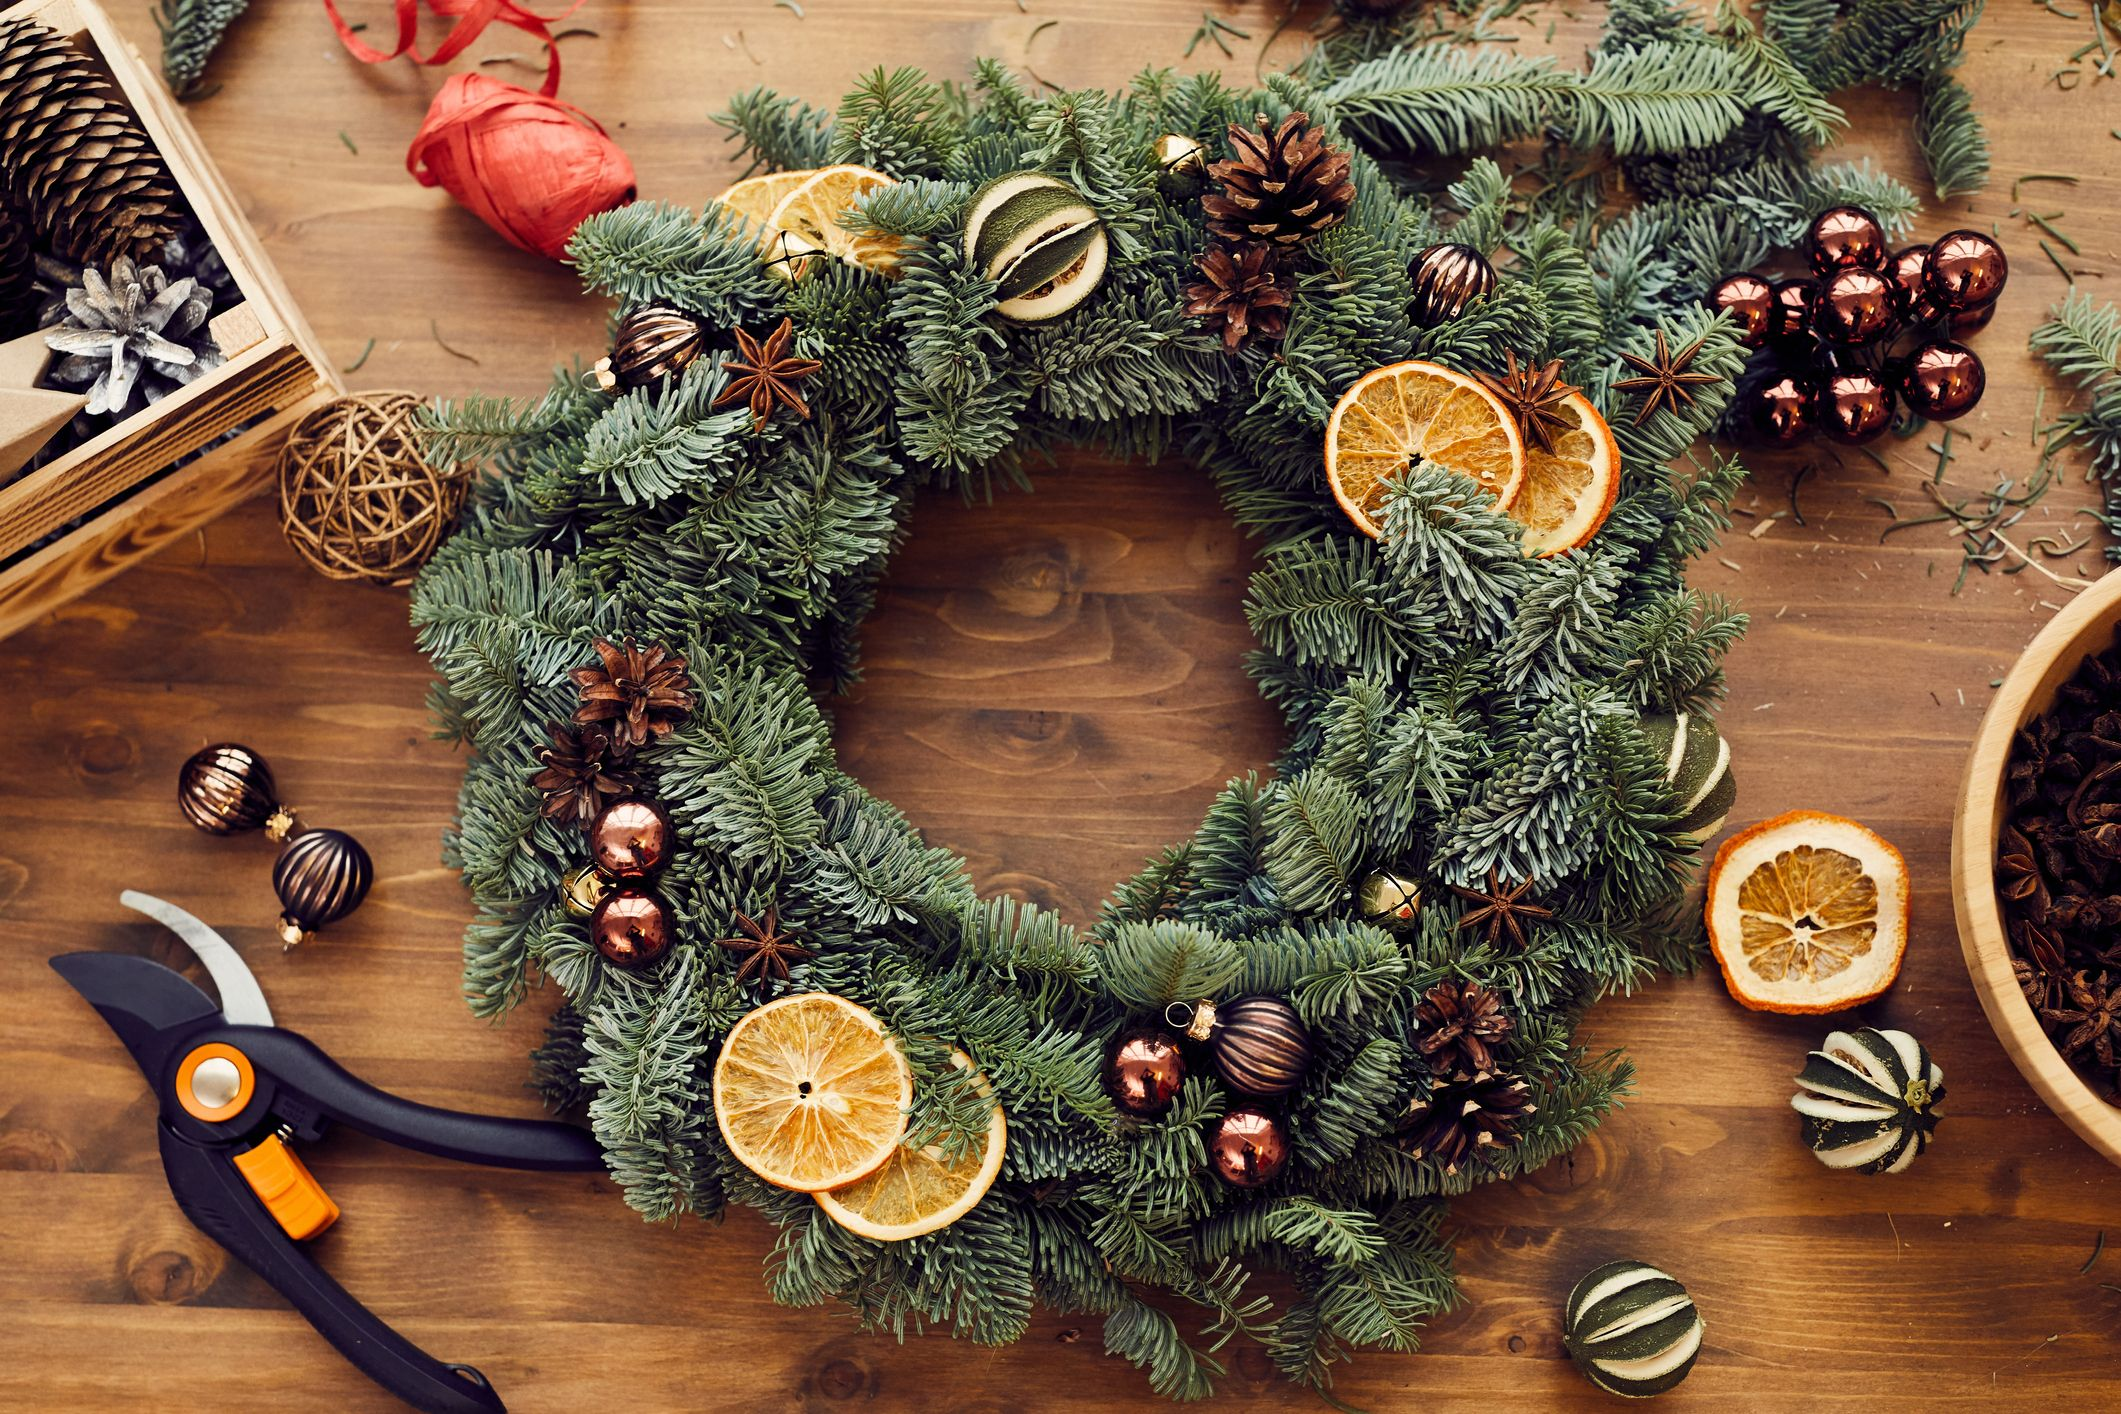 Diy Christmas Wreath Kits To Try At Home